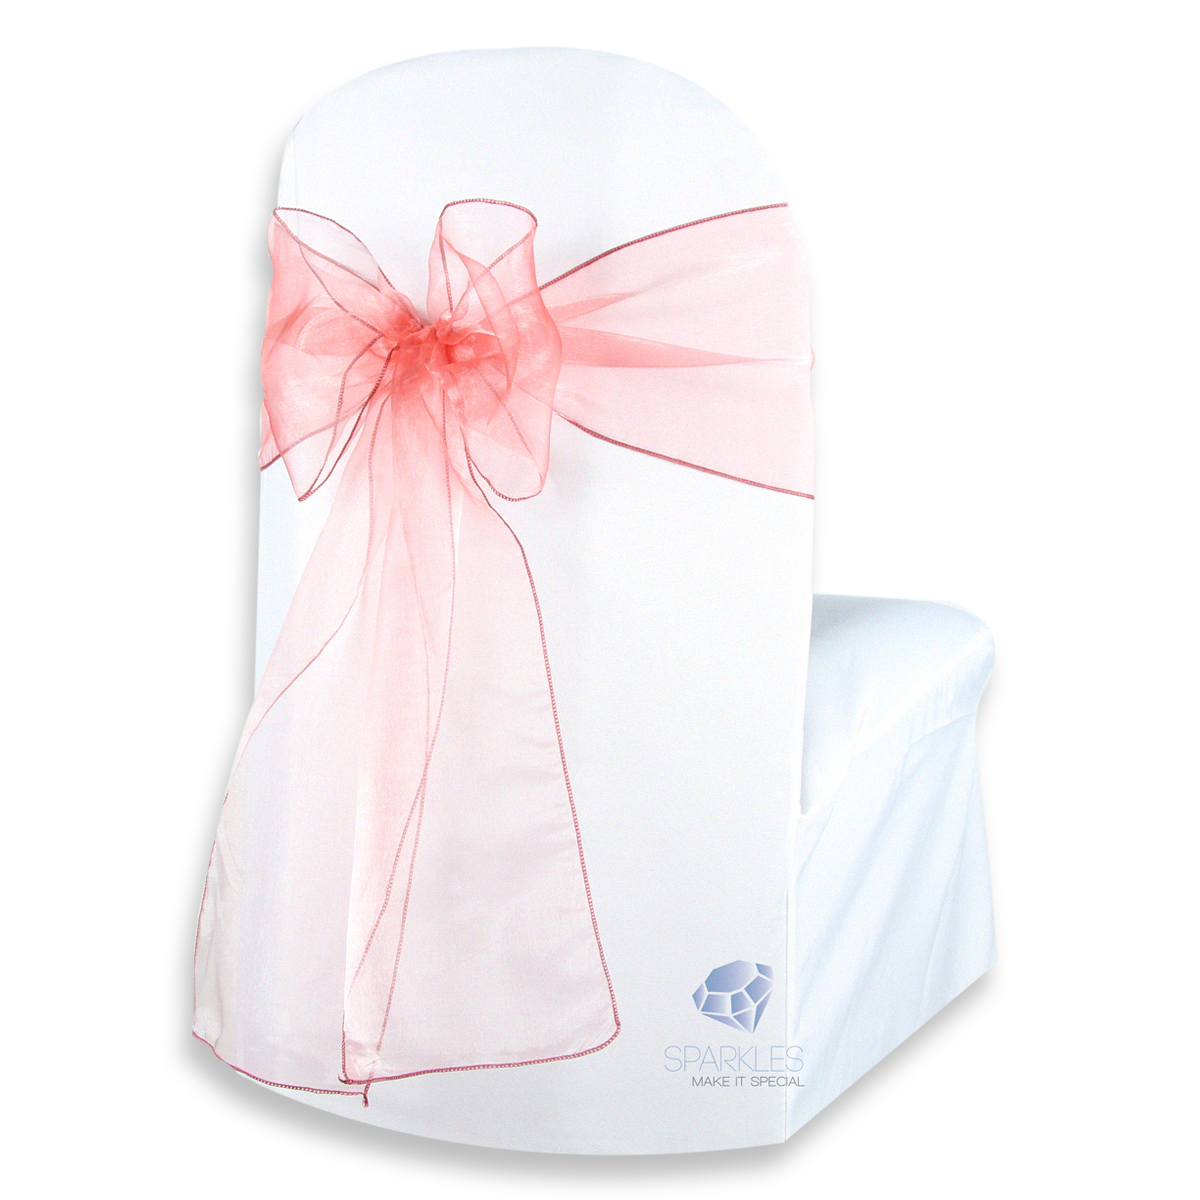 diy organza chair covers small bean bag chairs for toddlers 50 pcs cover bow sash 108 quotx8 quot wedding party